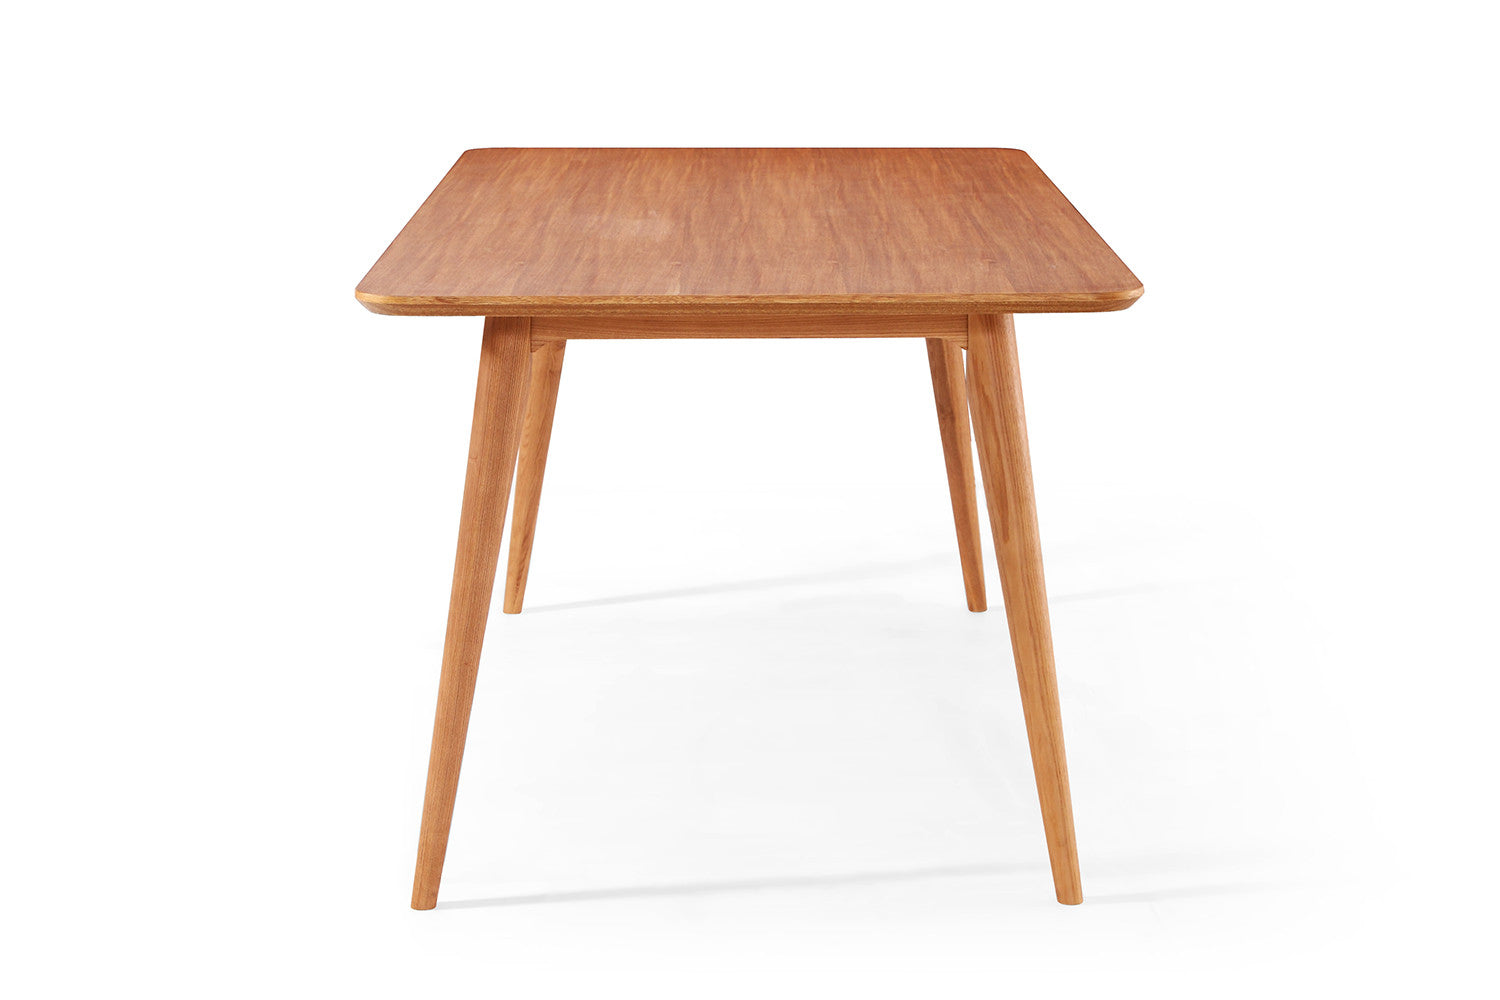 Table de salle manger design en bois julia dewarens for Table salle a manger escamotable